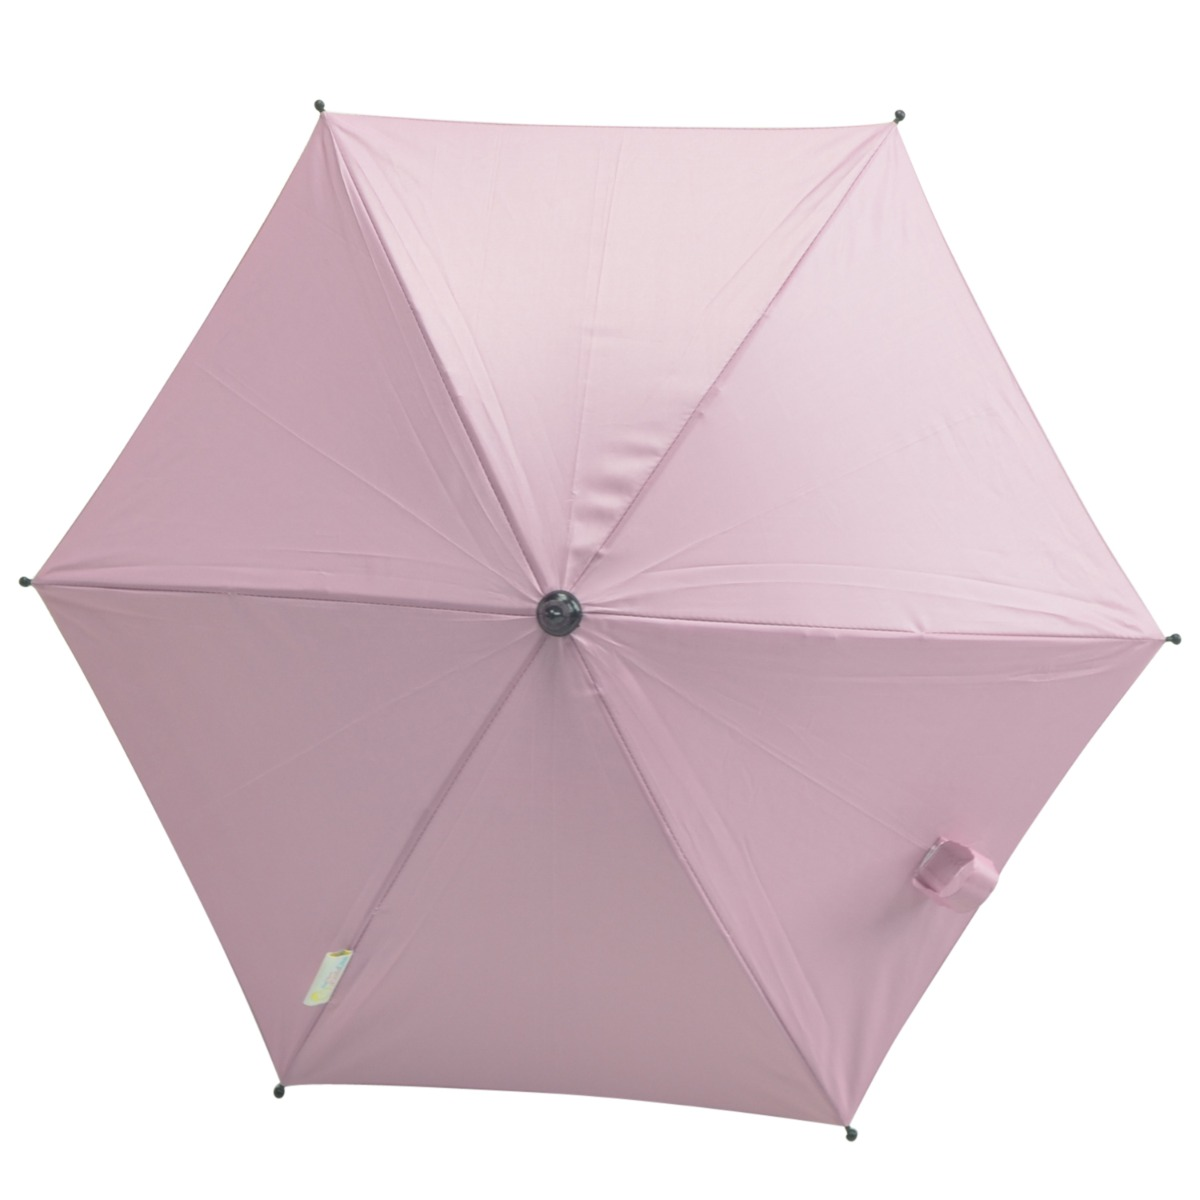 Baby-Parasol-Universal-Sun-Umbrella-Shade-Maker-Canopy-For-Pushchair-Pram-Buggy thumbnail 51